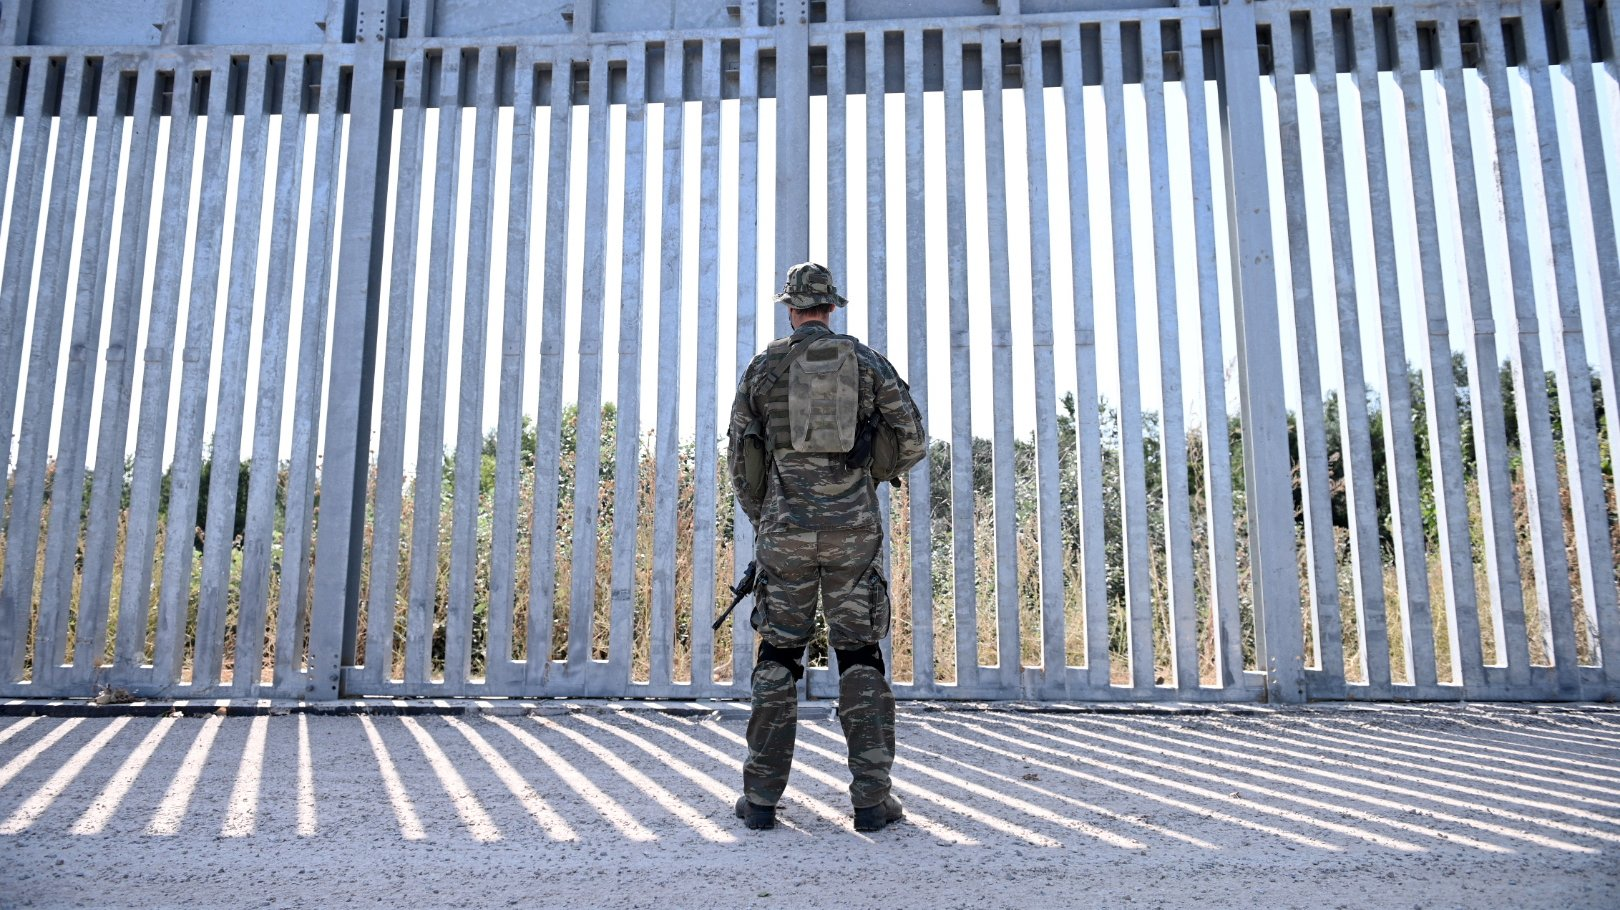 epa09440121 A soldier stands in front of a steel fence built along the Evros River in the area of Feres, at the Greek-Turkish border, Greece, 01 September 2021. The fence was built to prevent the illegal arrival of migrants into Greek territory.  EPA/DIMITRIS ALEXOUDIS